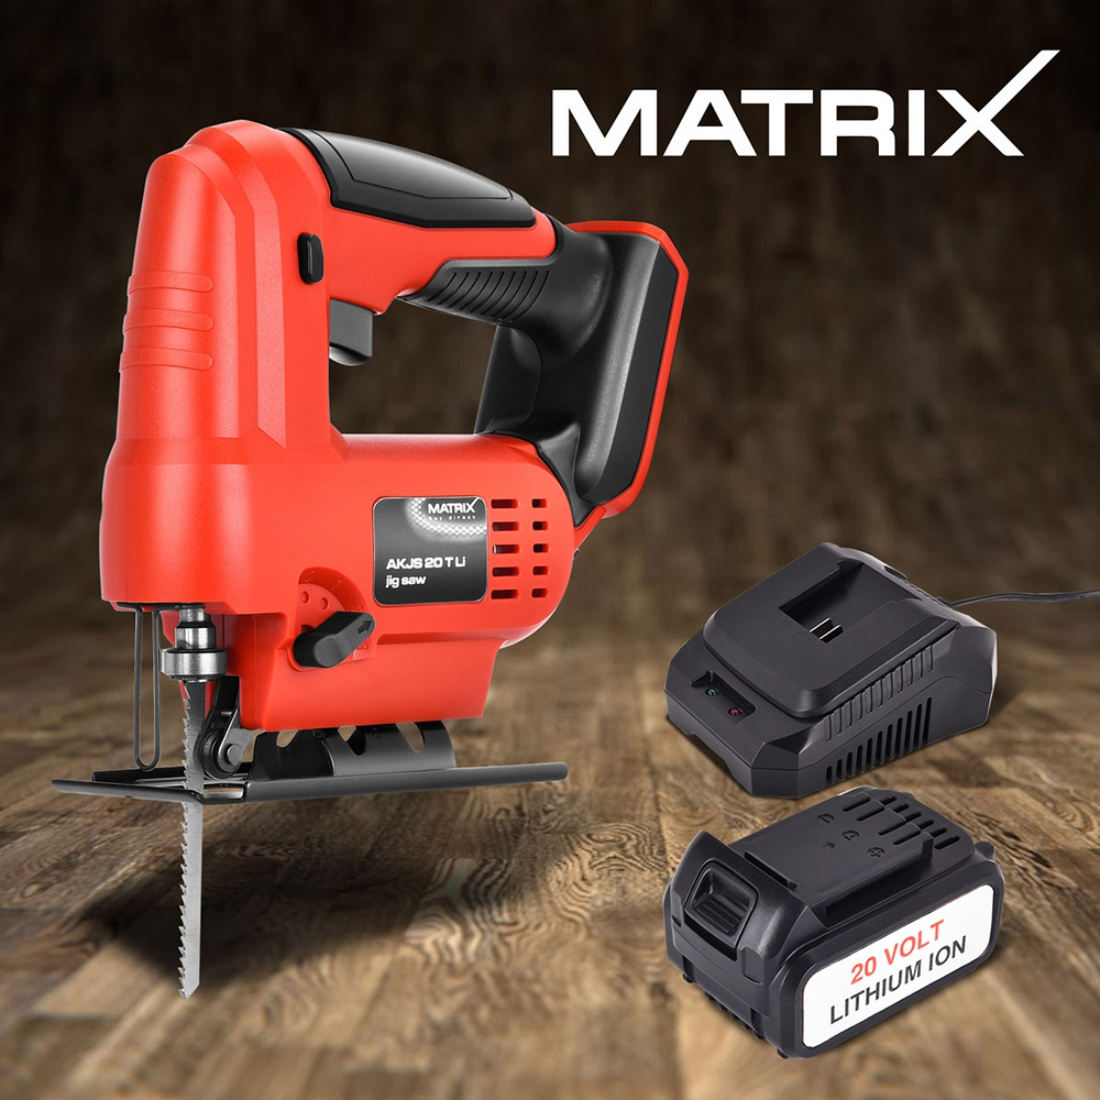 NEW Matrix Cordless Jigsaw Blade Power Cutting Tool 4.0ah Li-Ion Battery Charger